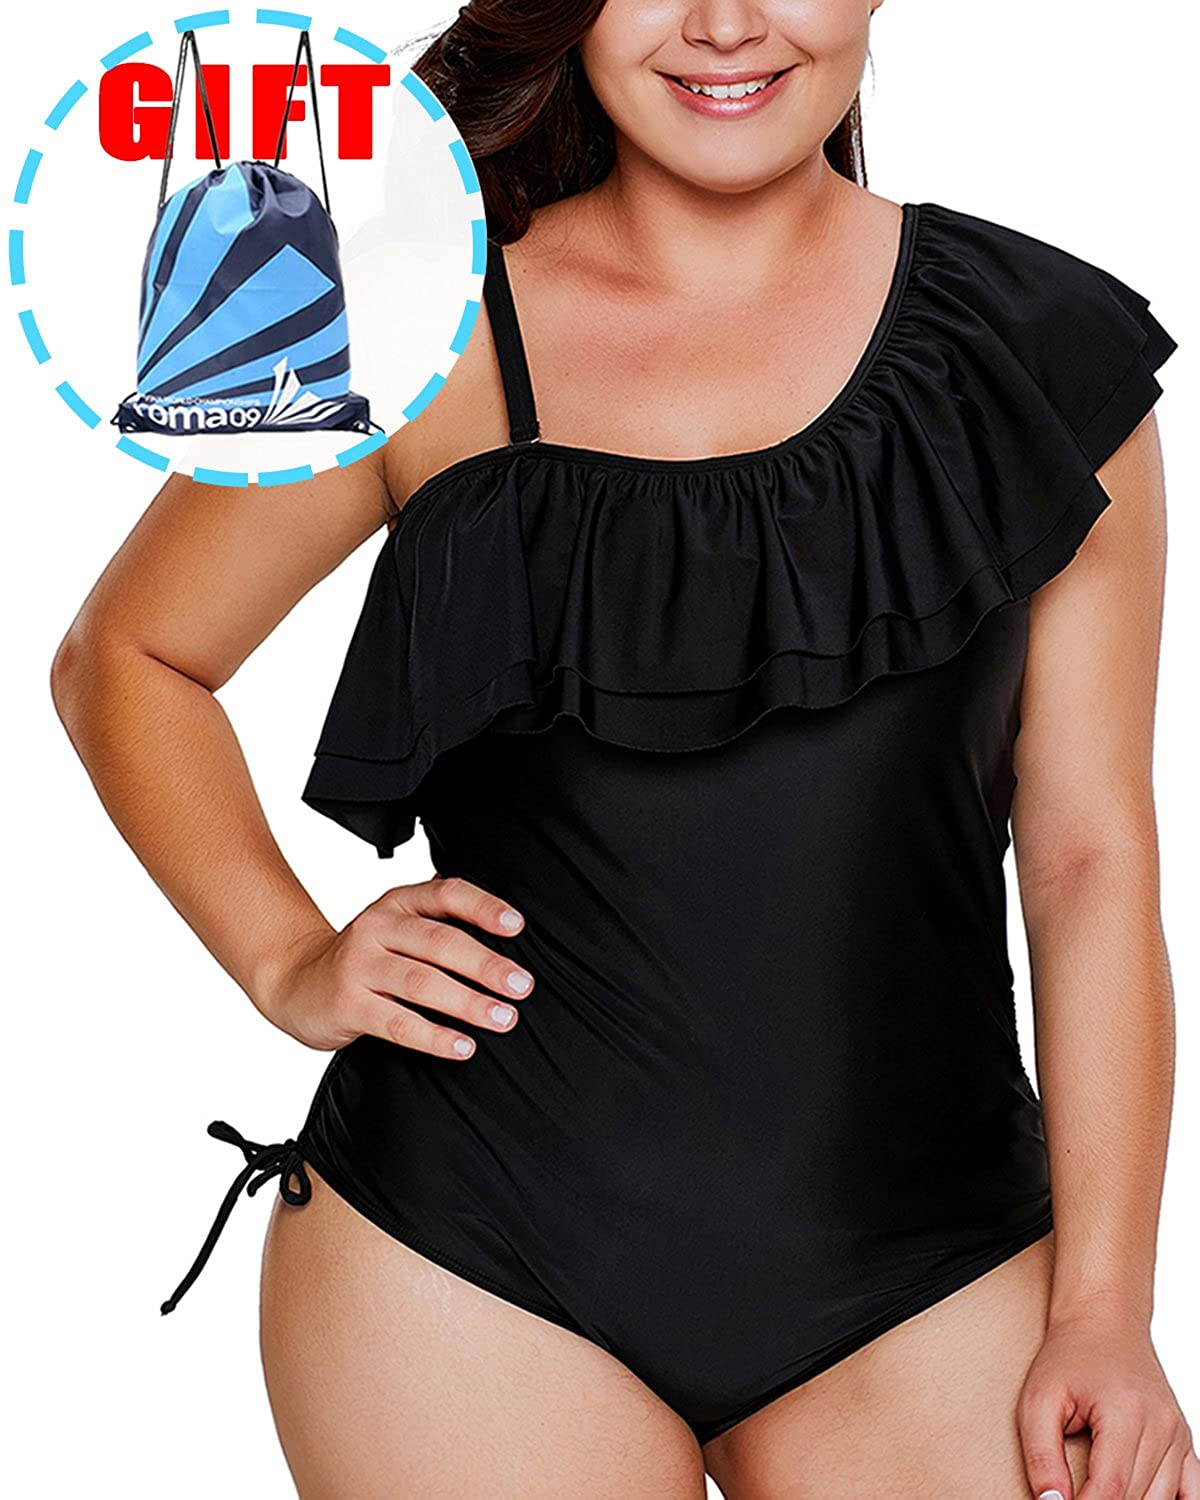 74bfe9f388 PACKAGE INCLUDED - 1* plus size swimsuit + 1* waterproof backpack  gift(Amazing Gift).These One Piece SWIMSUITS Has 11 Series and from M-3XL  US REGULAR and ...